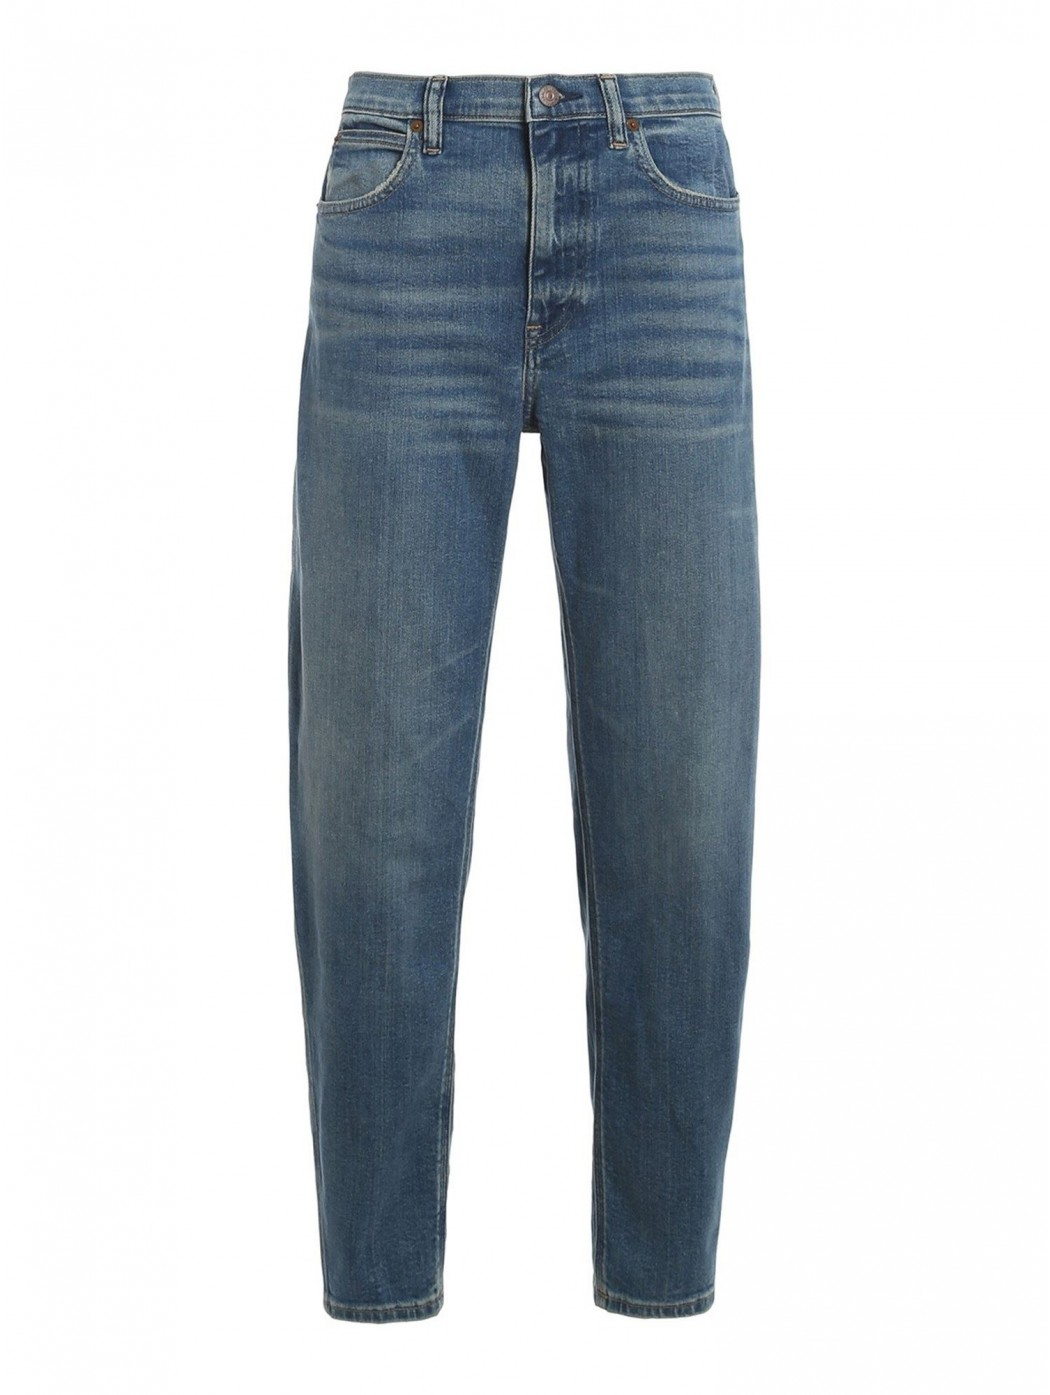 FIT DENIM POLO RALPH LAUREN DONNA 211799683 001